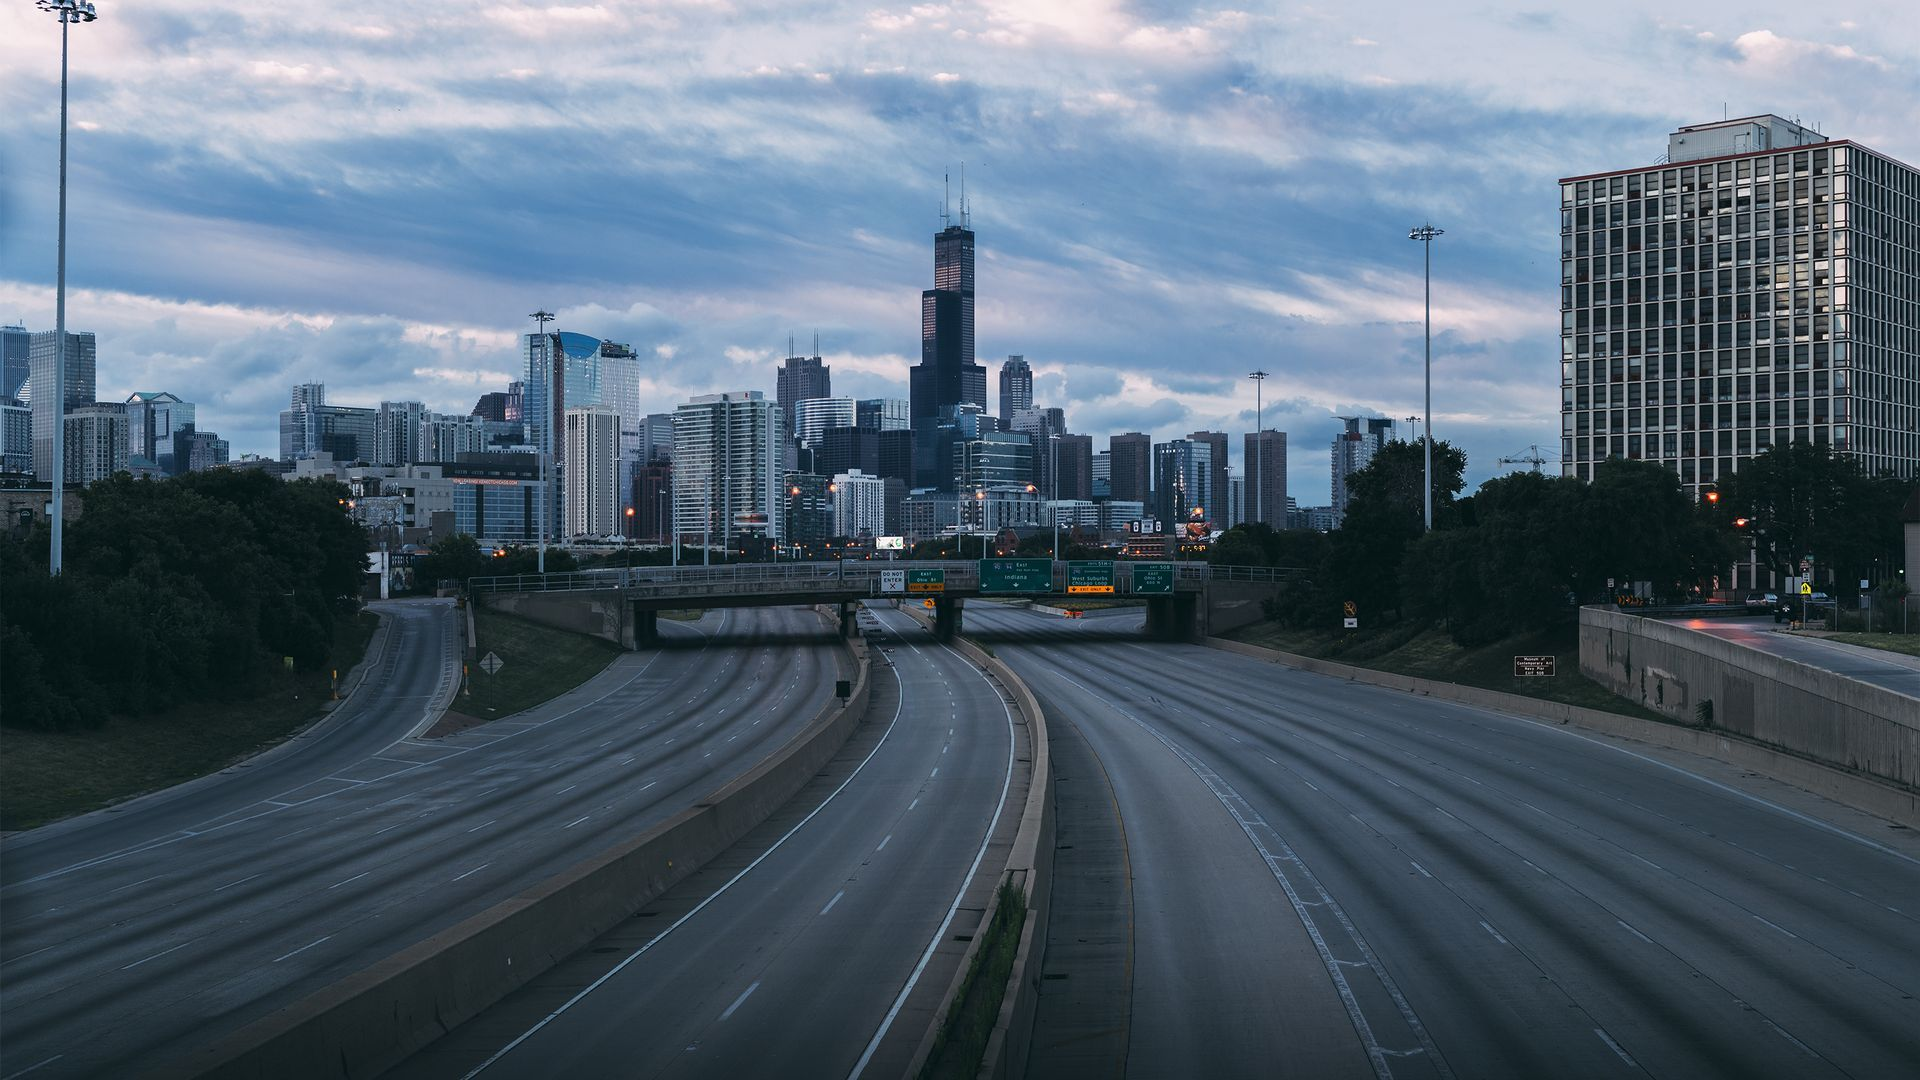 Chicago without Chicagoans - eerie photomanipulation by photographer Michael Salisbury